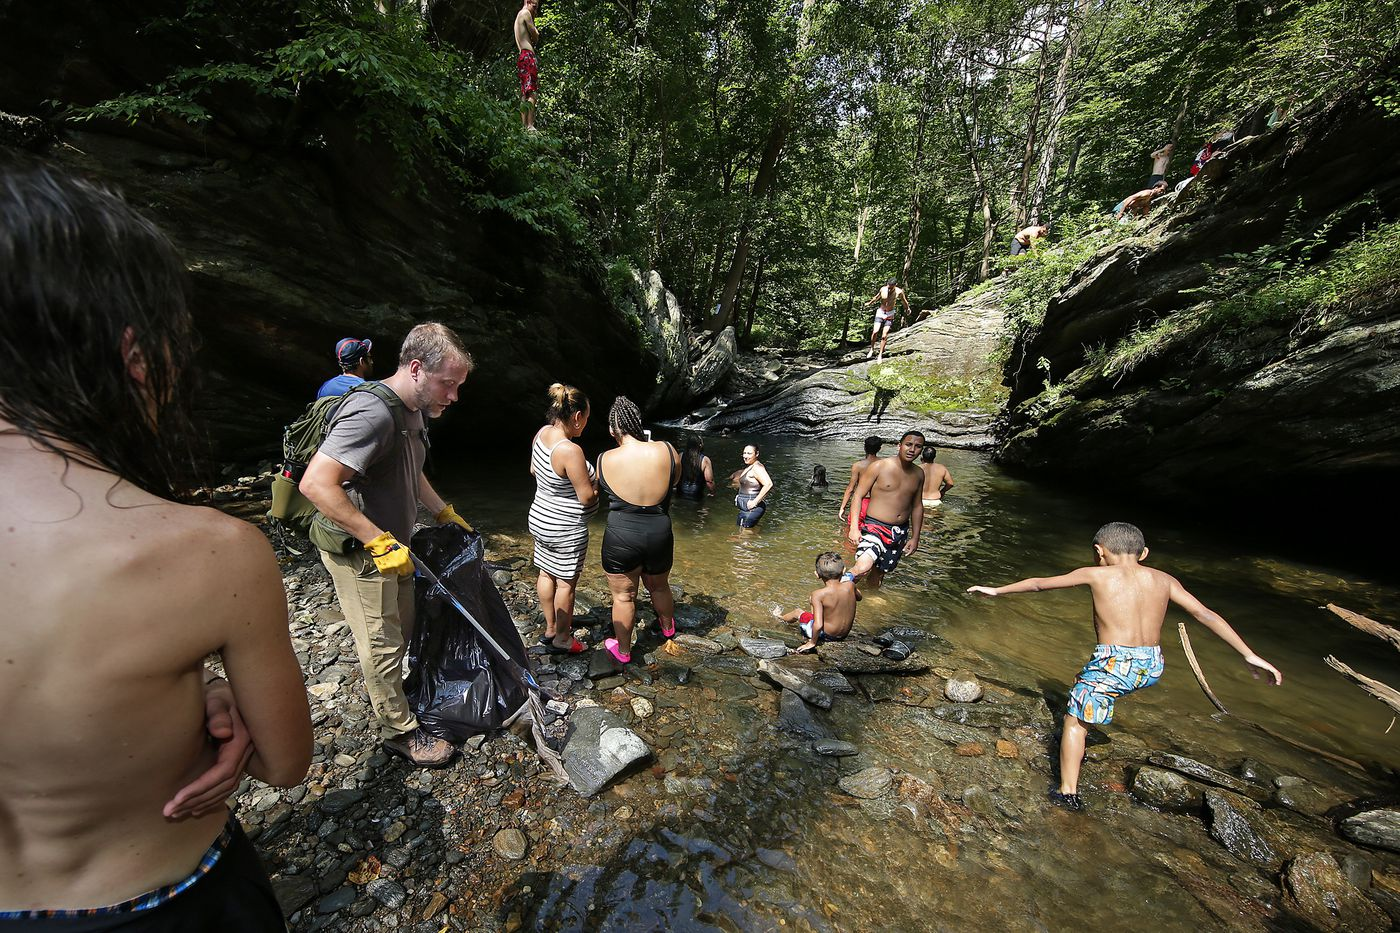 Shawn Green, at left, who is the volunteer manager for Friends of the Wissahickon, picks up litter as a crowd cools off at Devil's Pool in Wissahickon Valley Park in 2019.